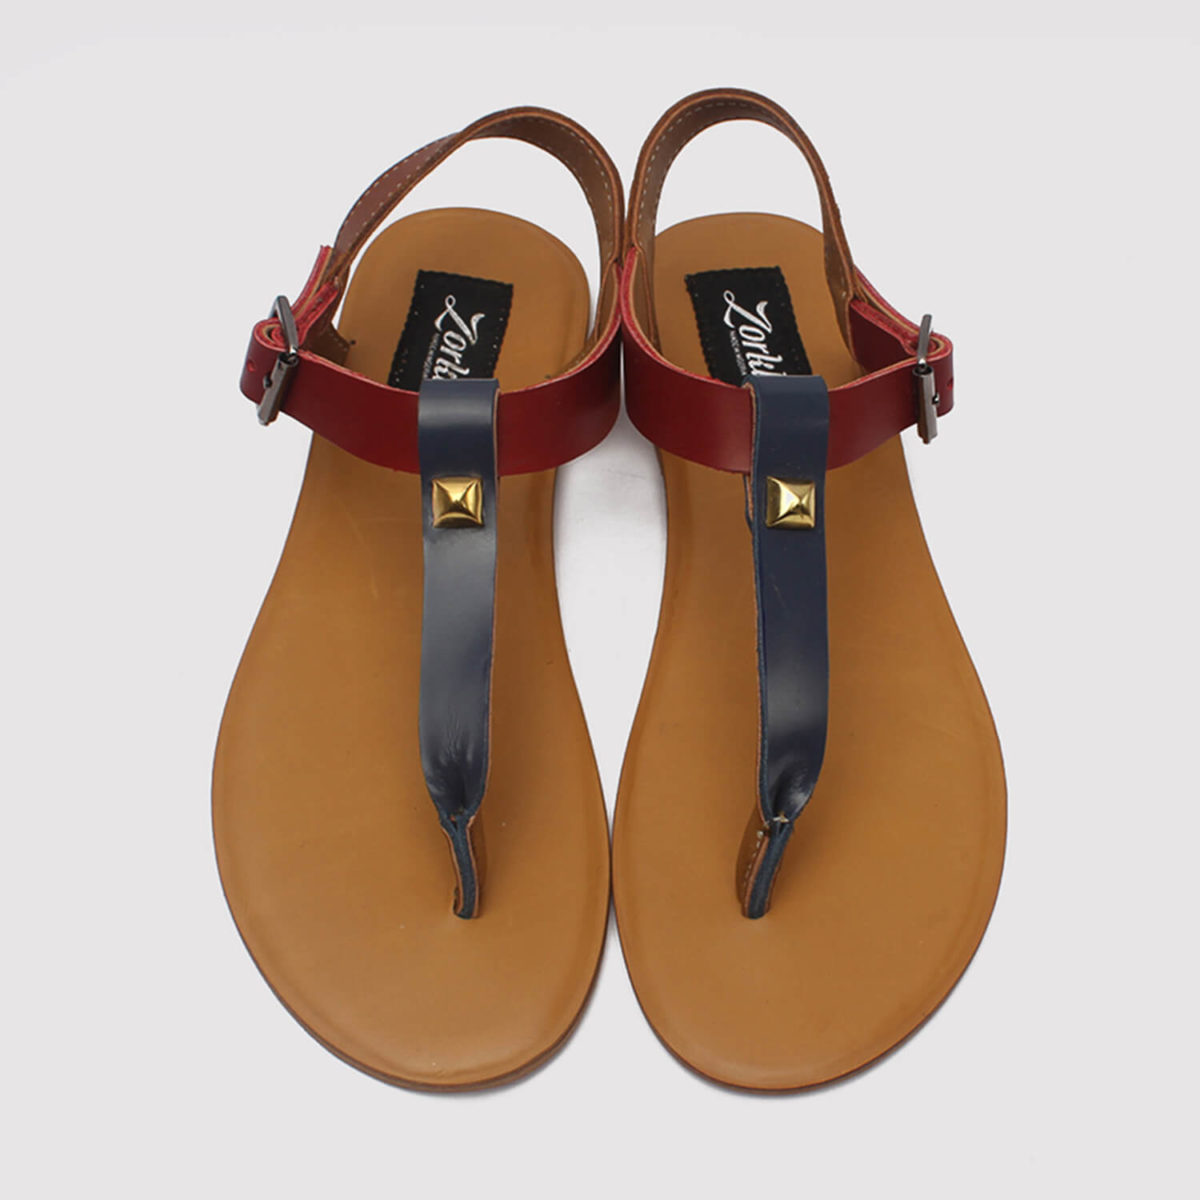 toke sandals blue brown red zorkle shoes lagos nigeria